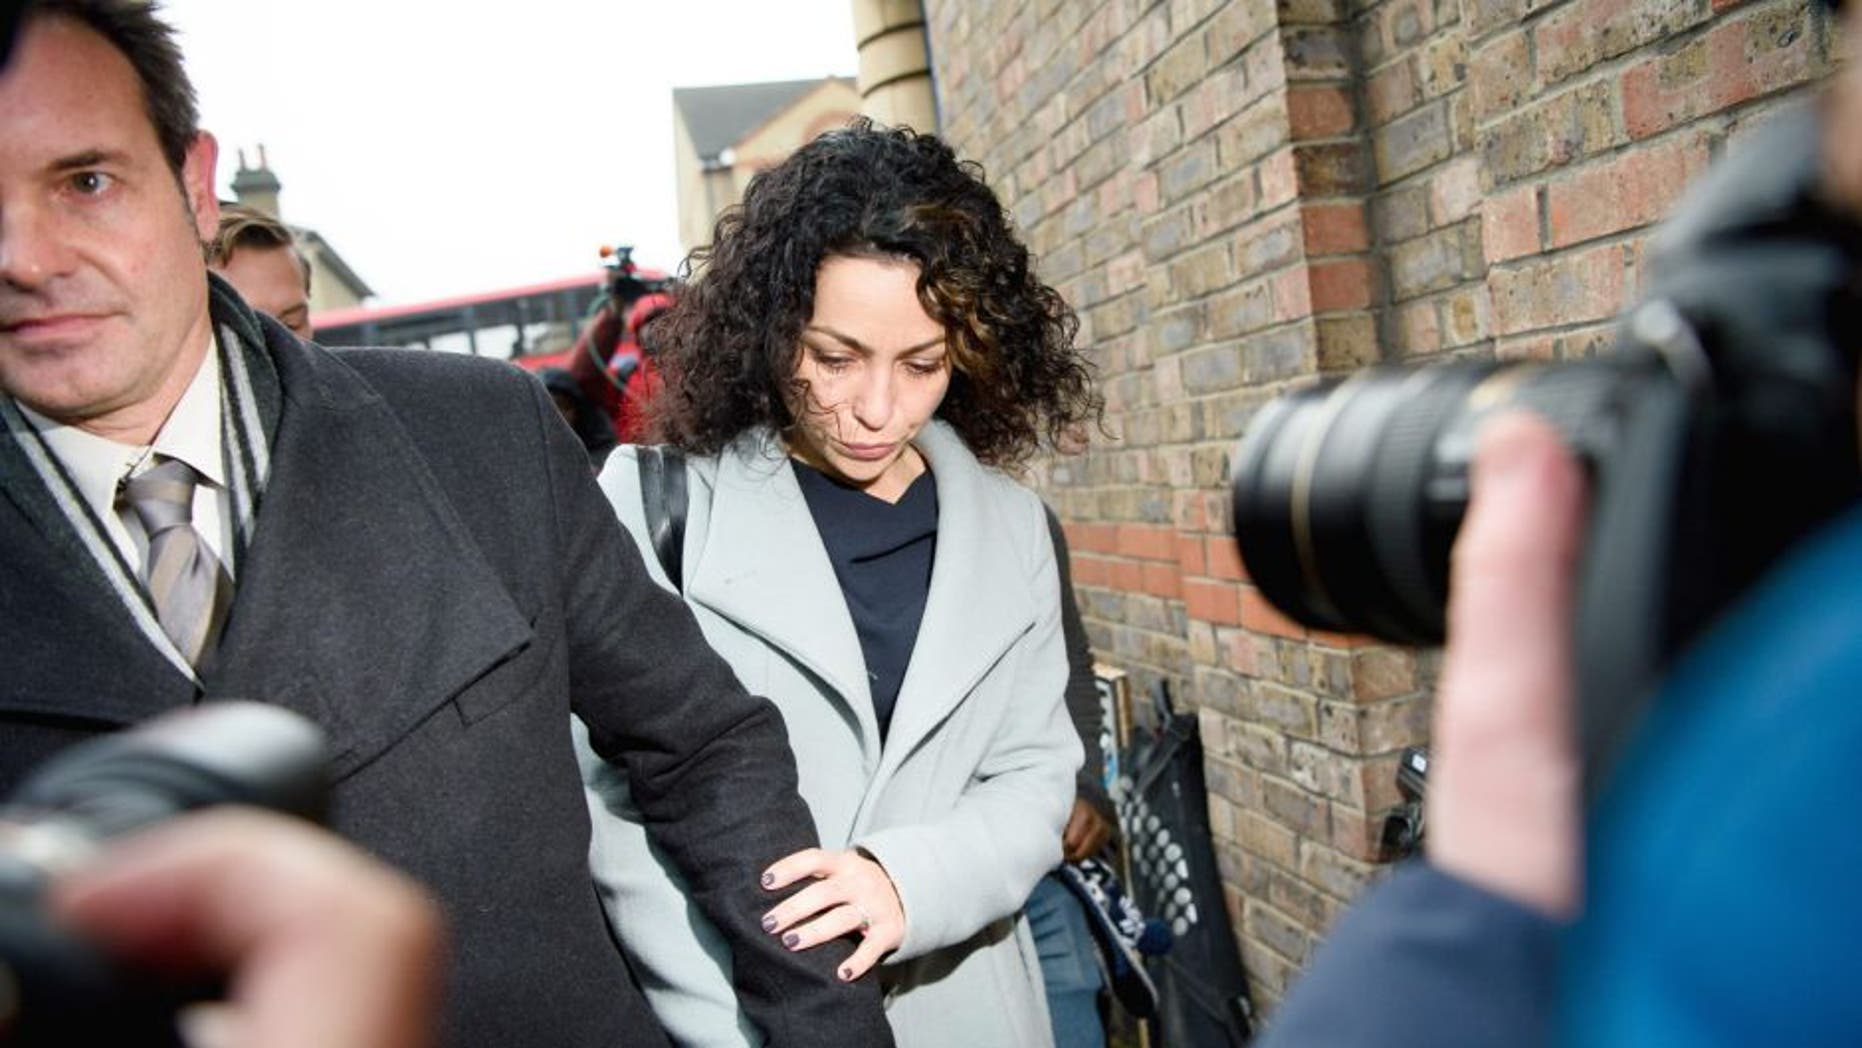 Former Chelsea first-team doctor Eva Carneiro (C) accompanied by her husband Jason De Carteret (L) leaves Croydon employment tribunal in London on January 6, 2016. Carneiro attended the tribunal hearing today regarding her constructive dismissal case against the club. The preliminary hearing at London South Employment Tribunal is being held in private before an employment judge and will outline the timetable for the case. AFP PHOTO / LEON NEAL / AFP / LEON NEAL (Photo credit should read LEON NEAL/AFP/Getty Images)